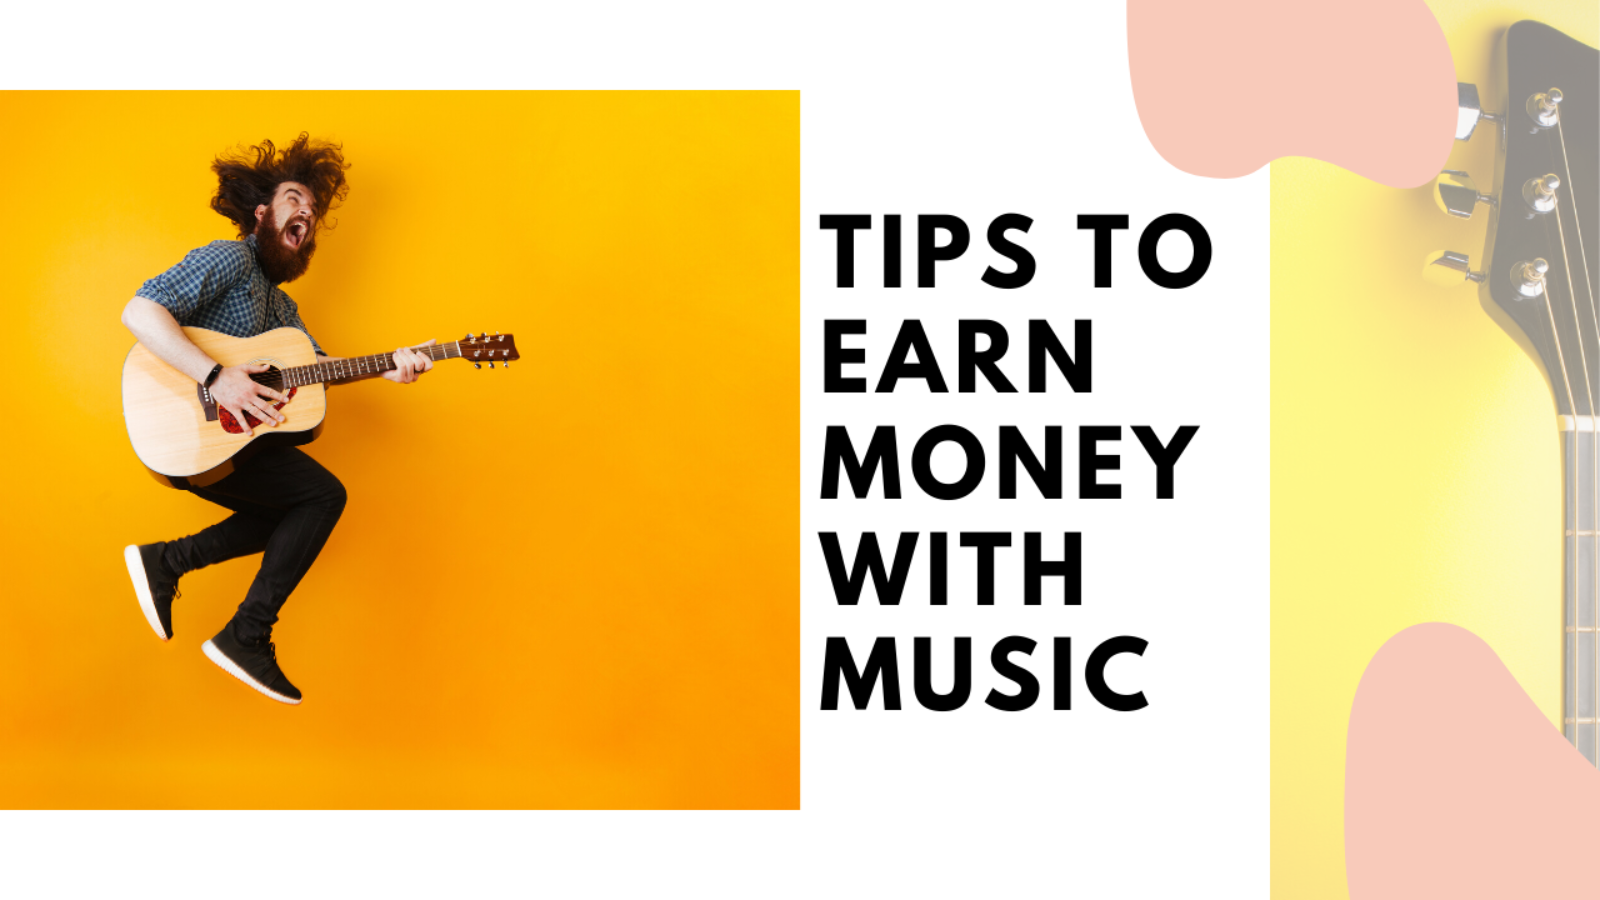 Tips to earn money with music